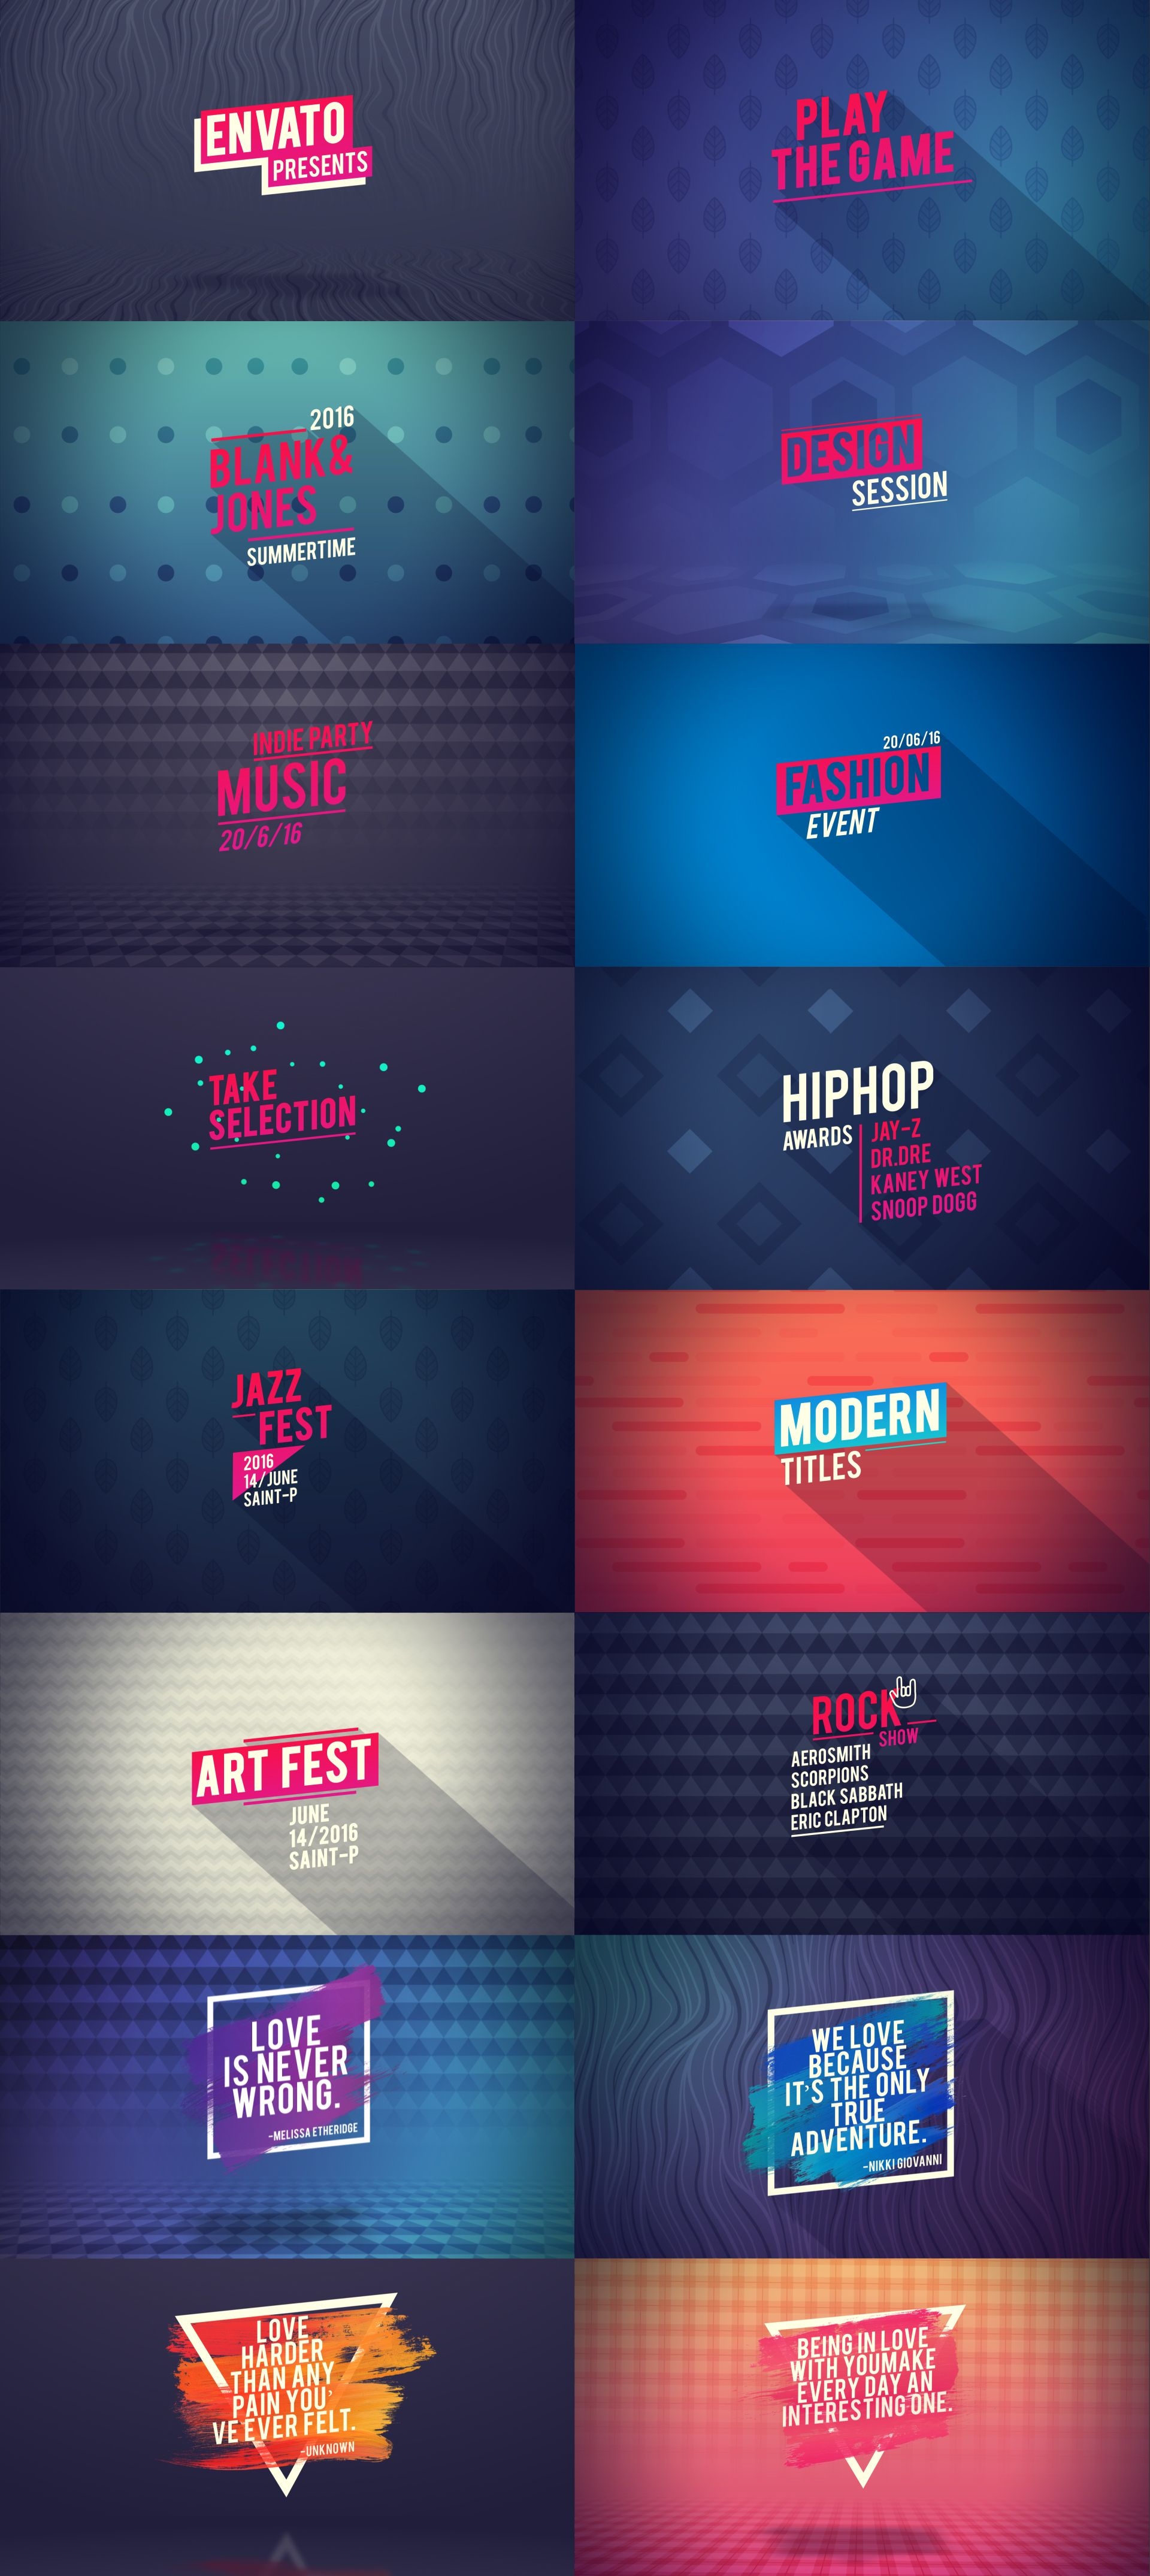 Ultimate Titles Package On Behance TYPETYPETYPE Pinterest - Awesome after effects website template design